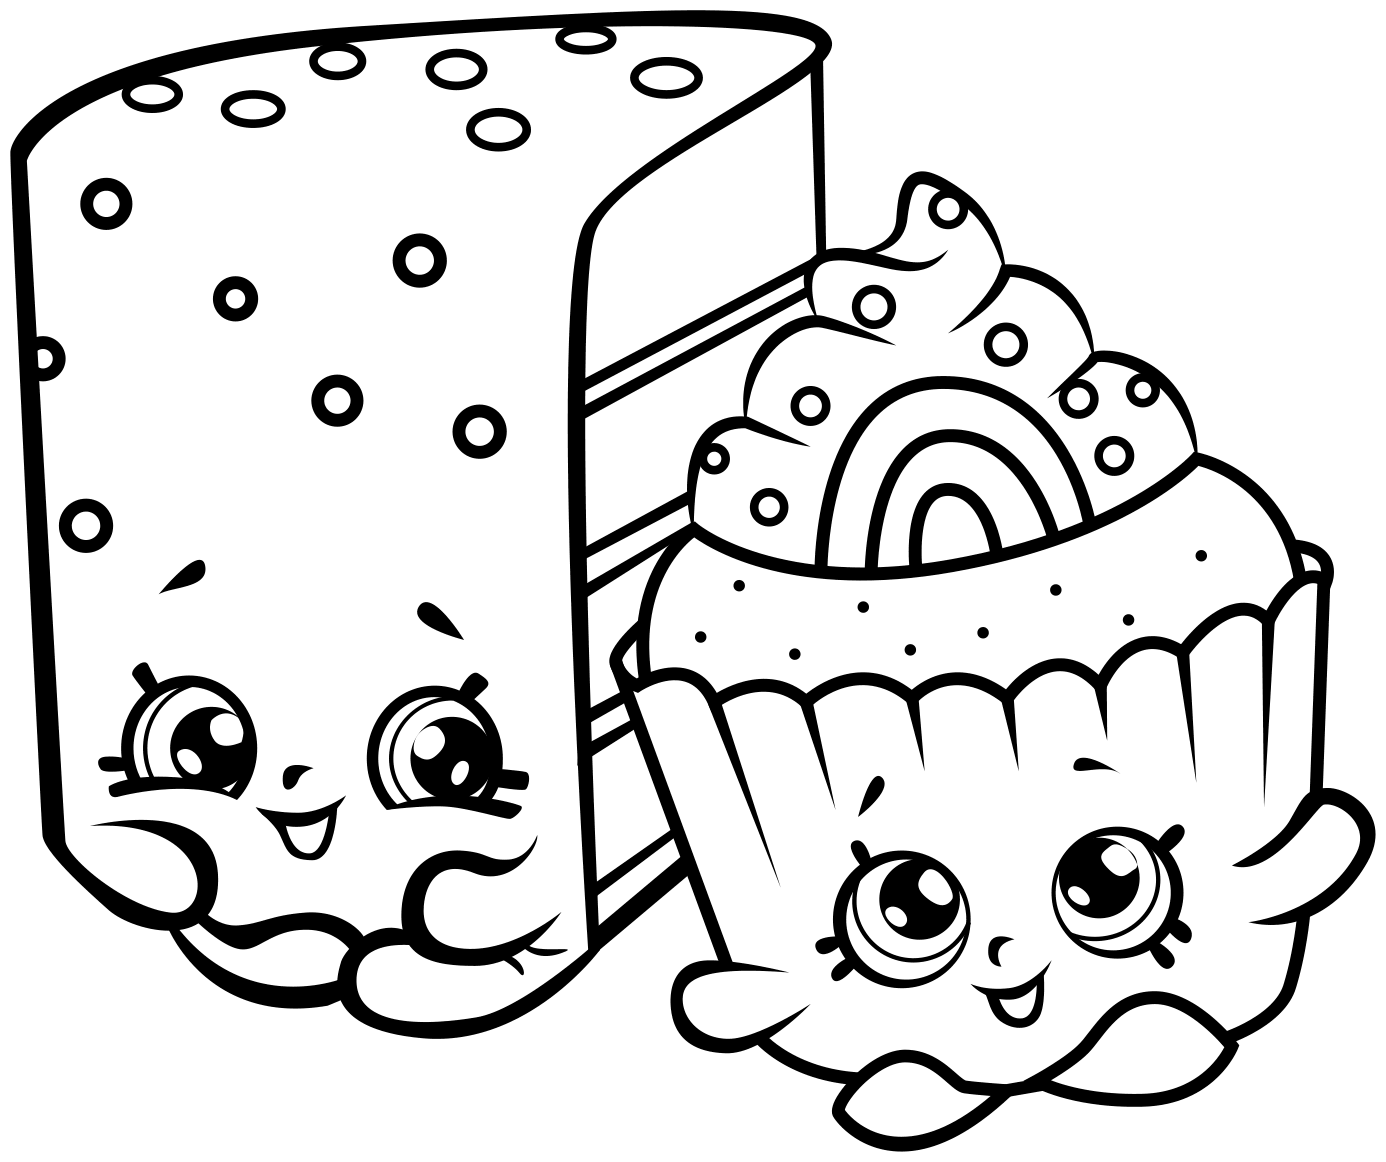 Shopkins Coloring Pages Best Coloring Pages For Kids Colouring Pages